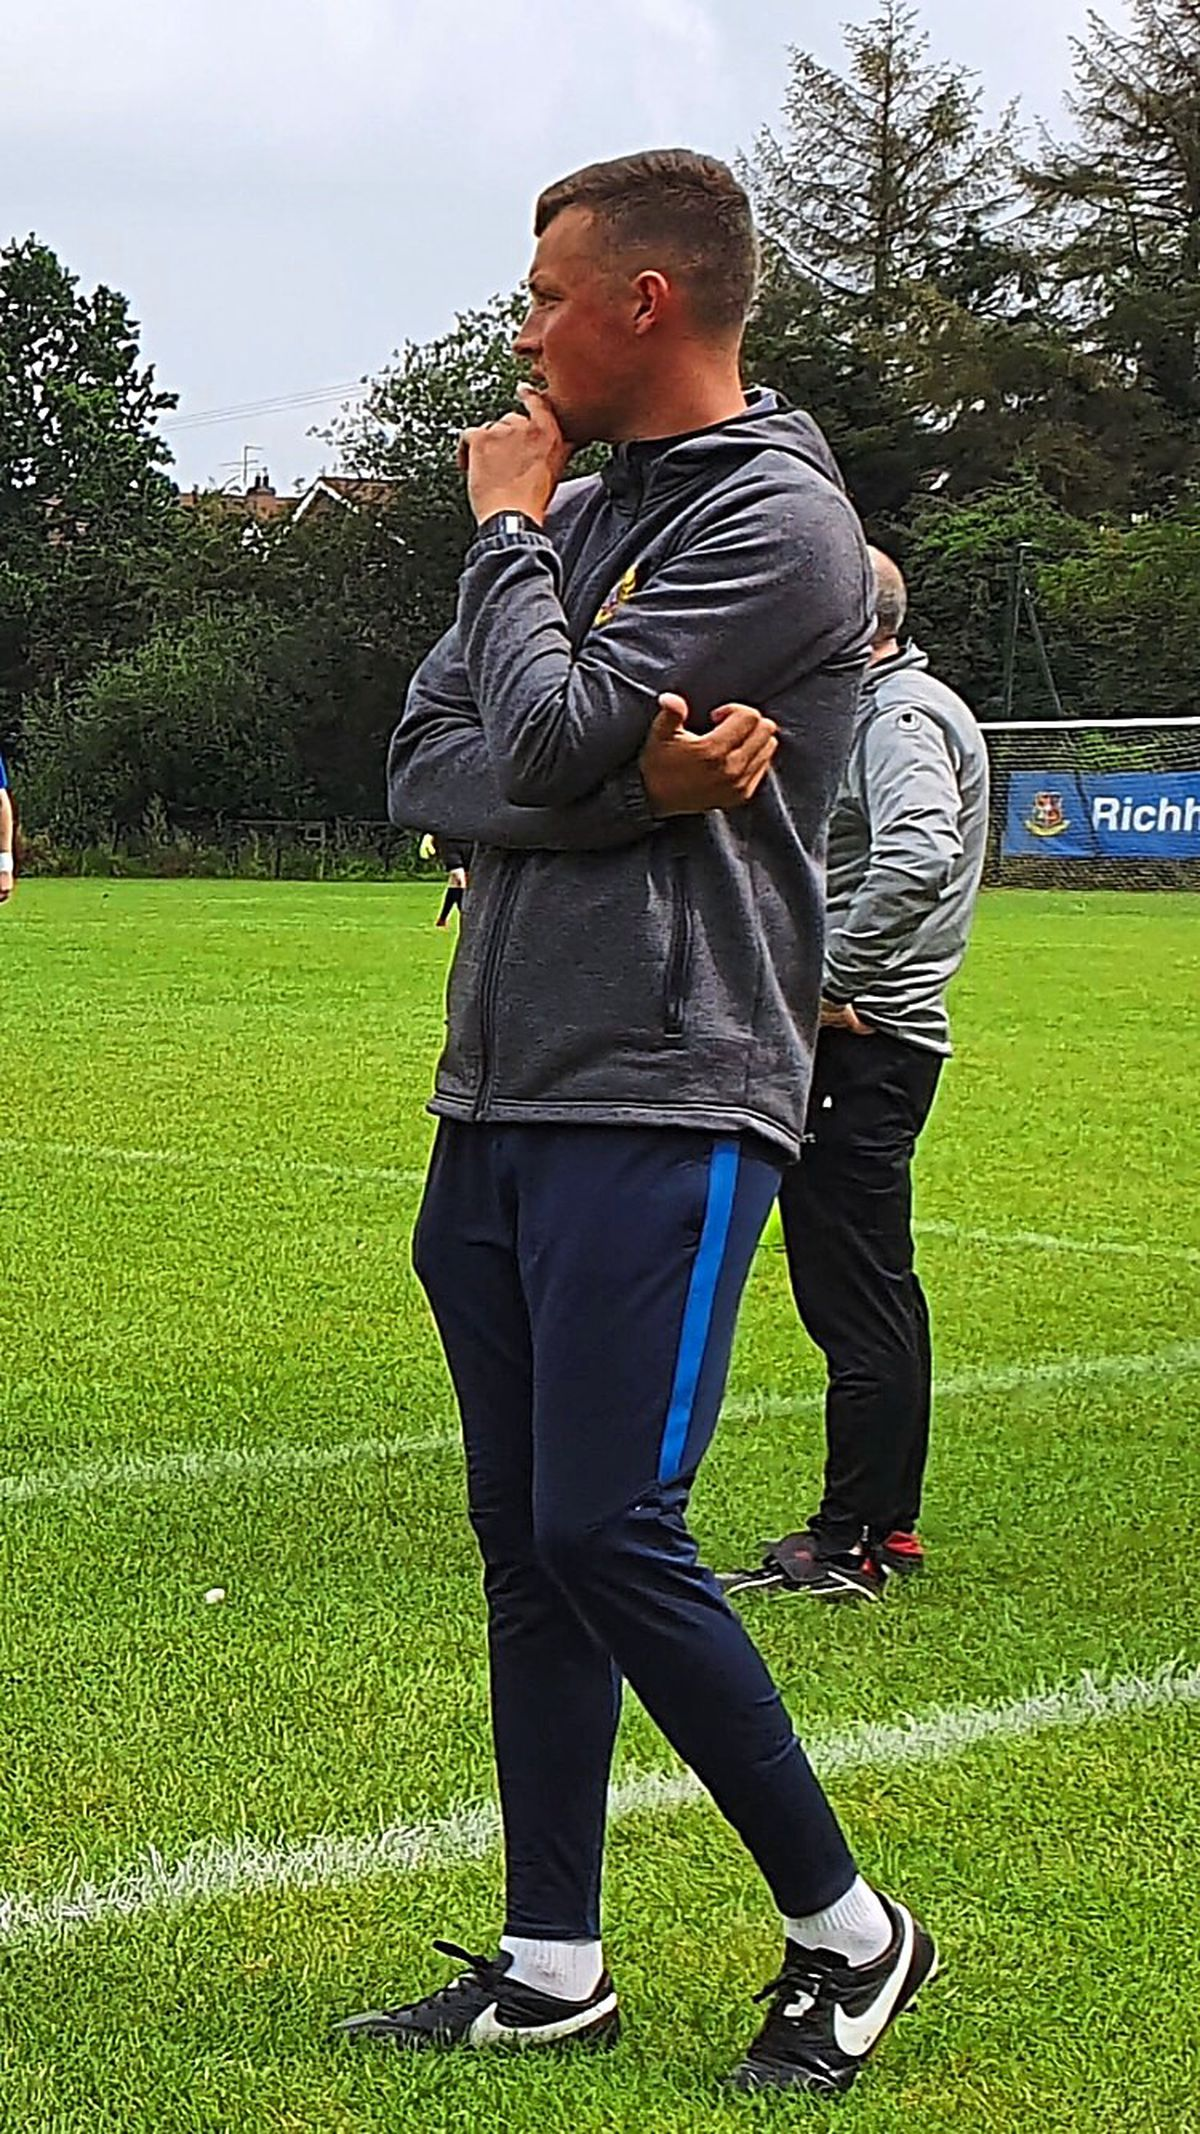 The lure of football has seen him coaching at Rectory Rangers